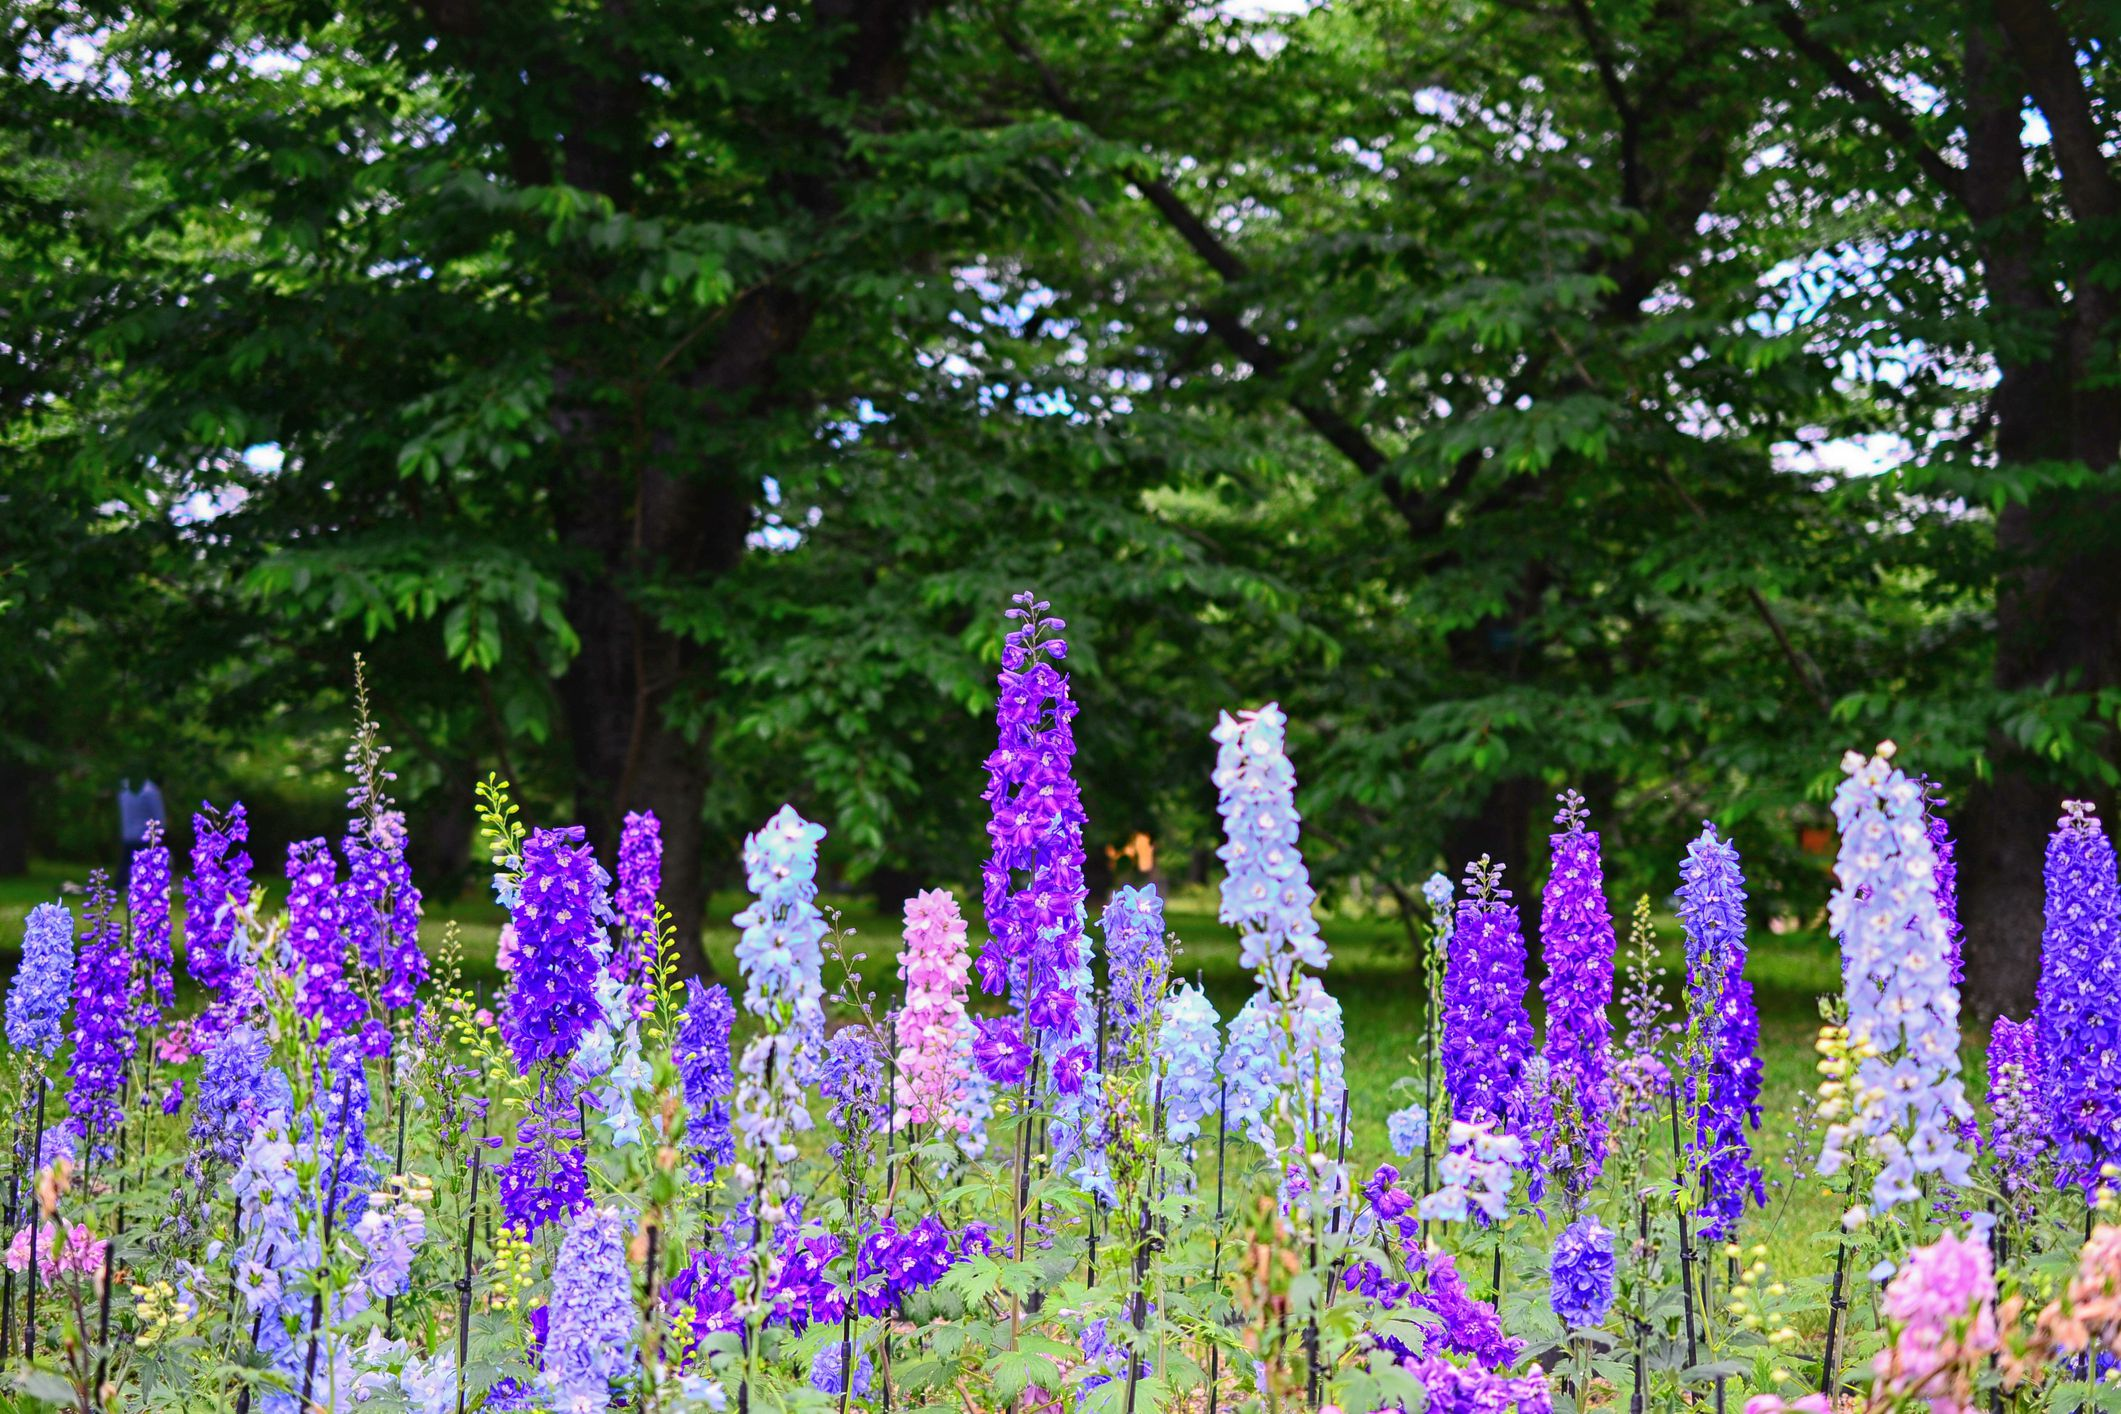 Row of delphiniums in different colors.